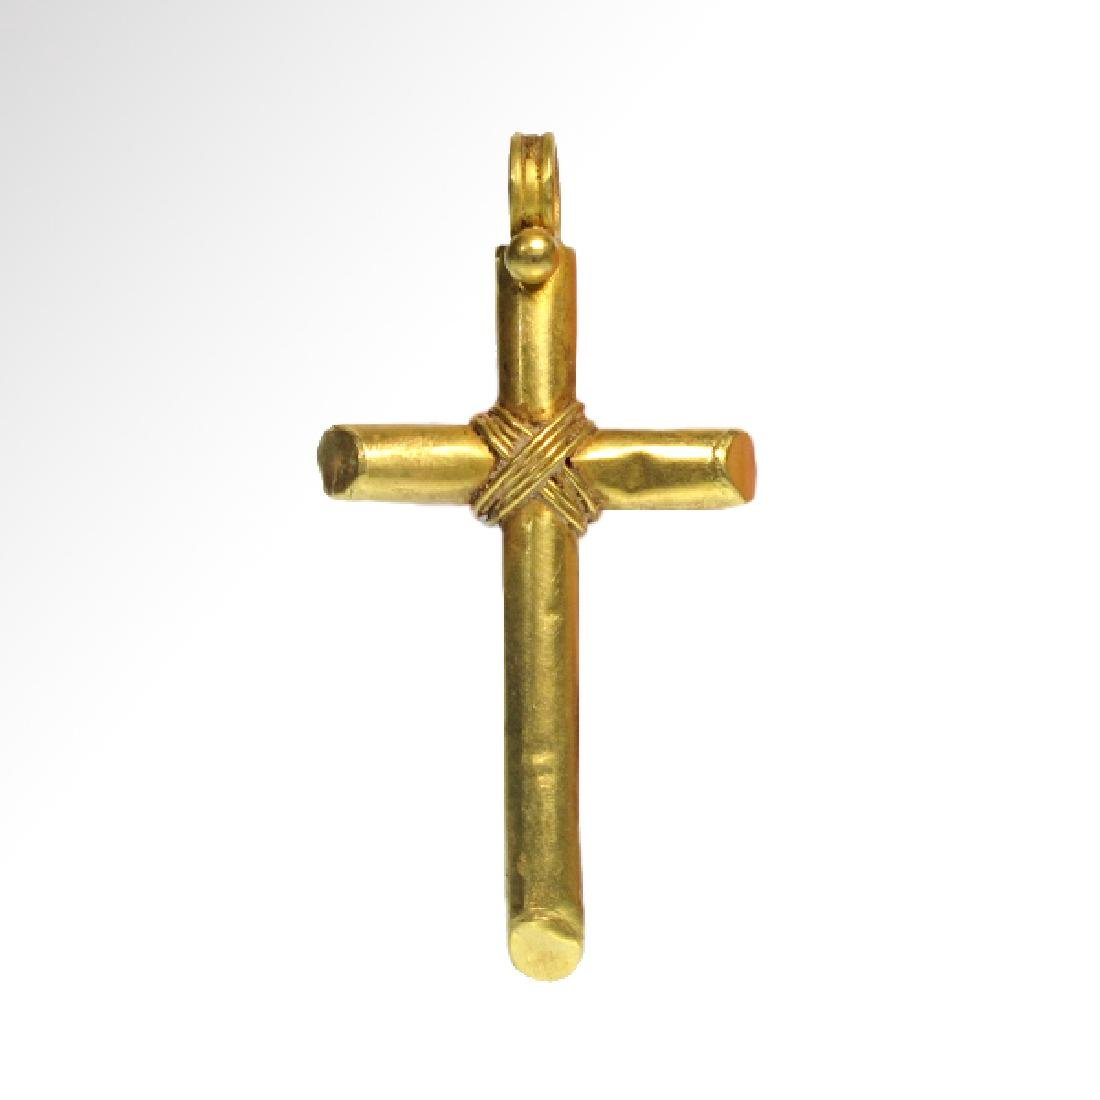 Byzantine Gold Cross, c. 9th-10th Century A.D.